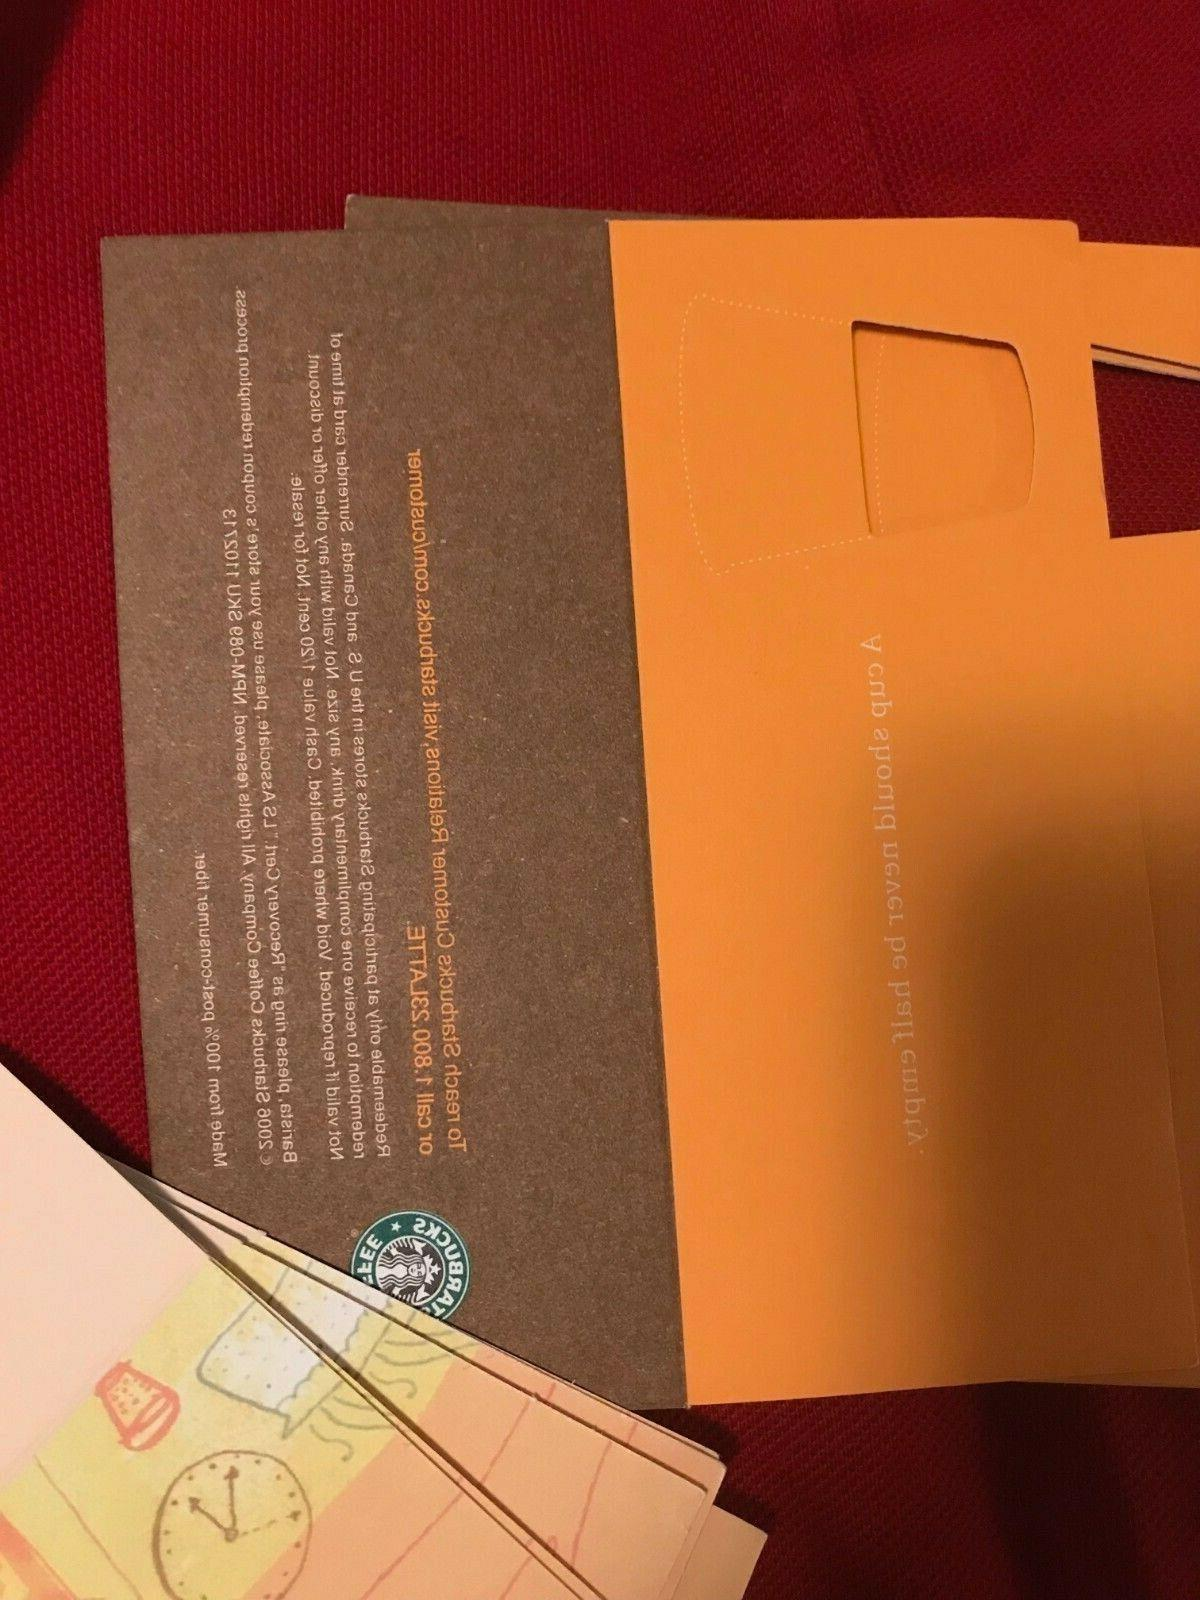 20 coffee certificate coupon-free shipping